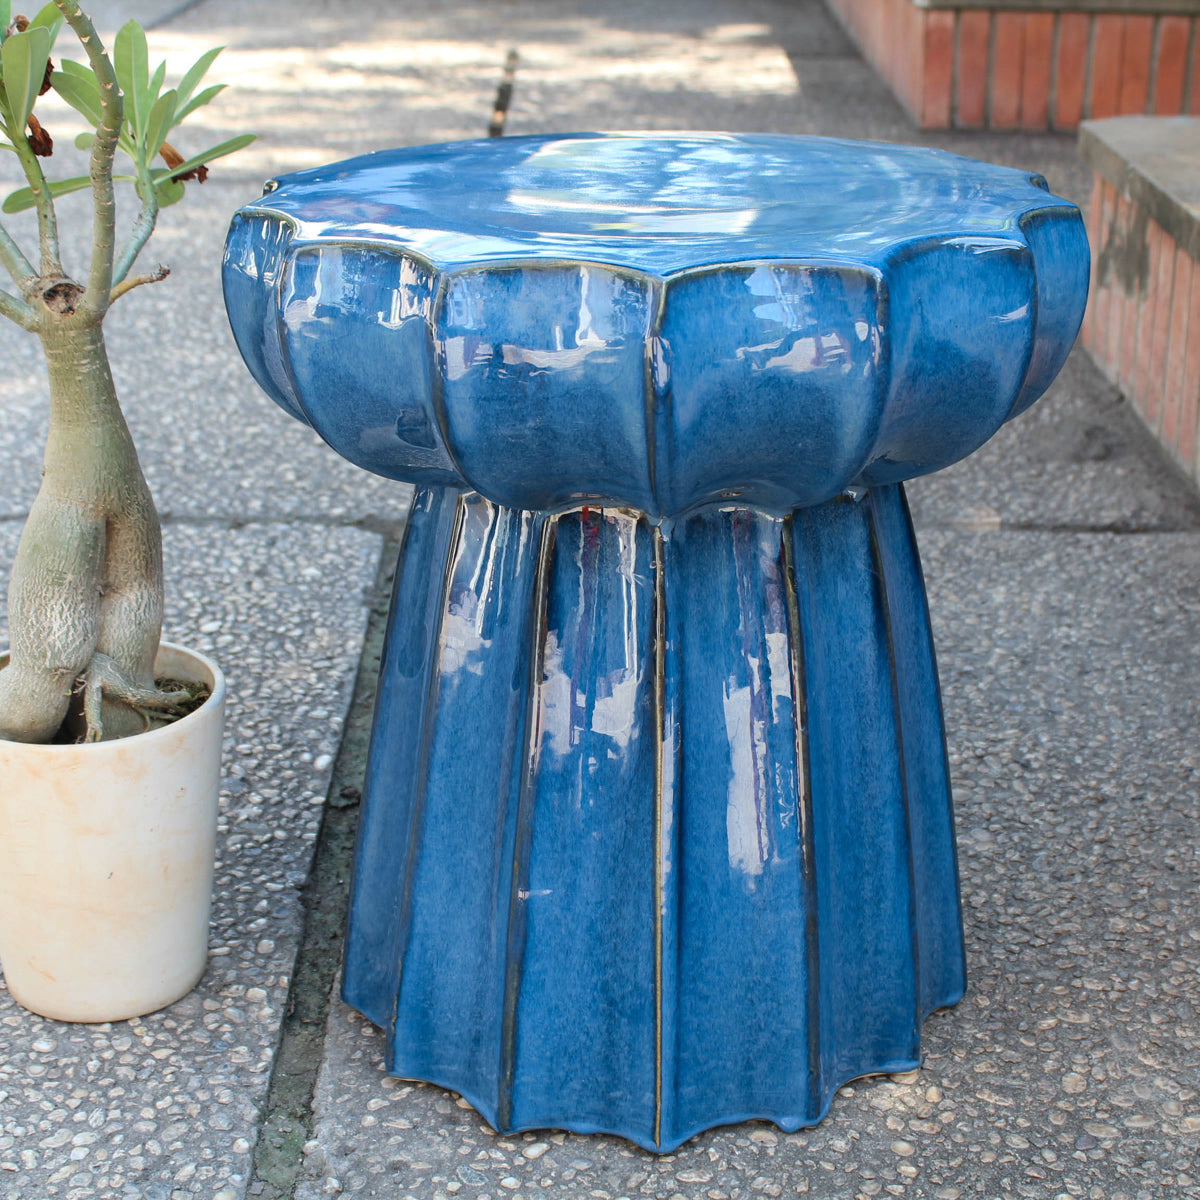 Navy Blue Round Scalloped Ceramic Garden Stool Navy Blue Glaze by International Caravan - 1